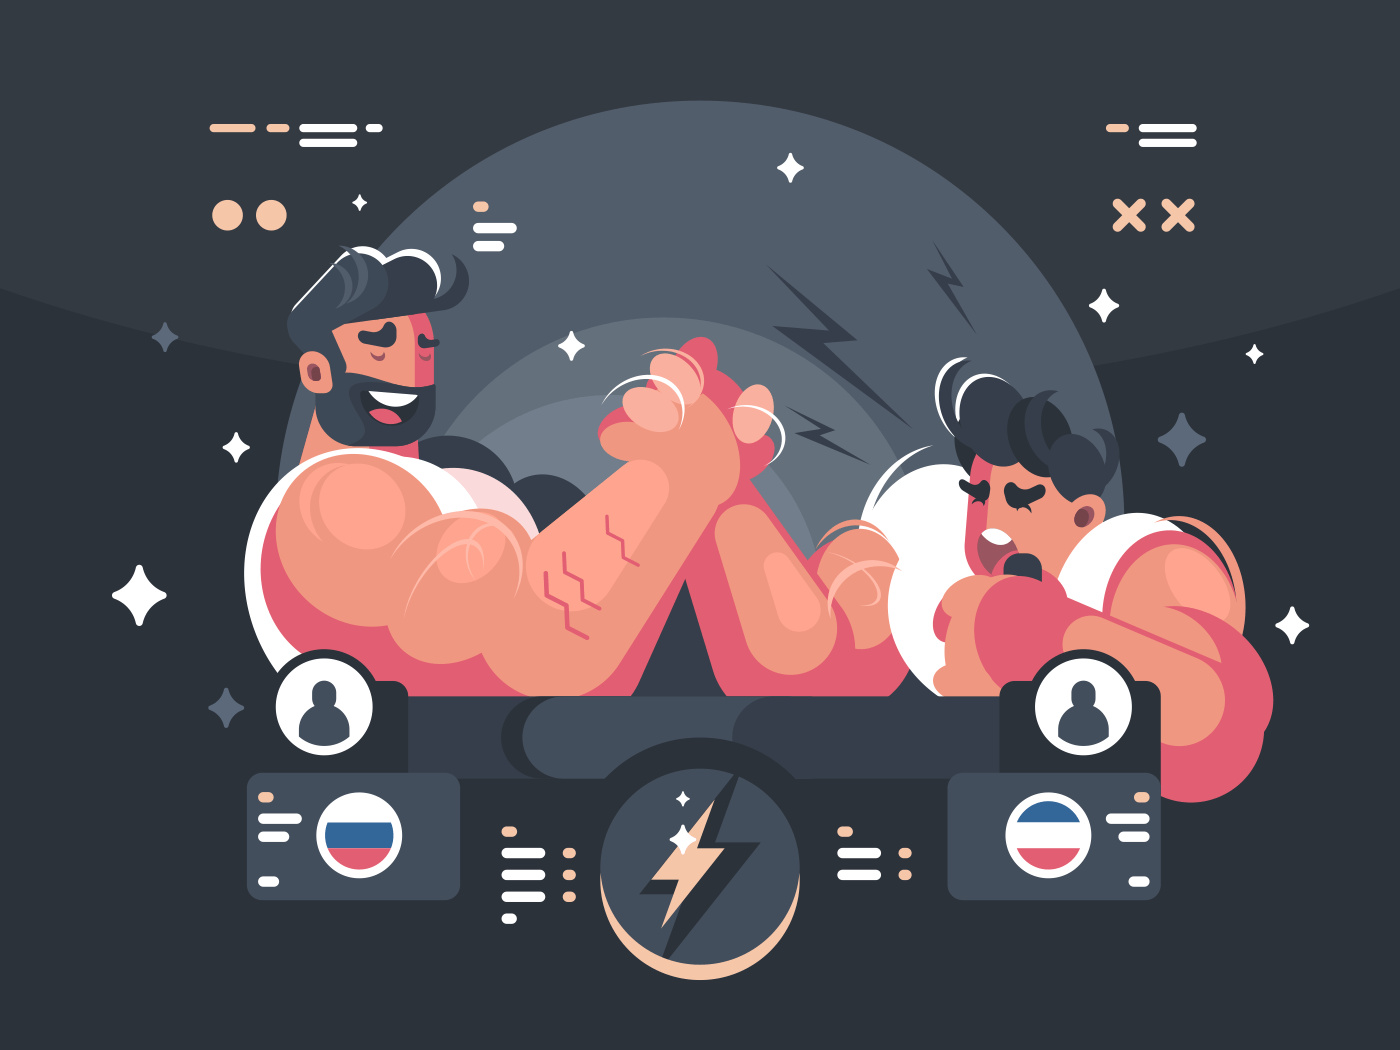 Competitions in armwrestling, two athletes compete in wrestling. Vector illustration